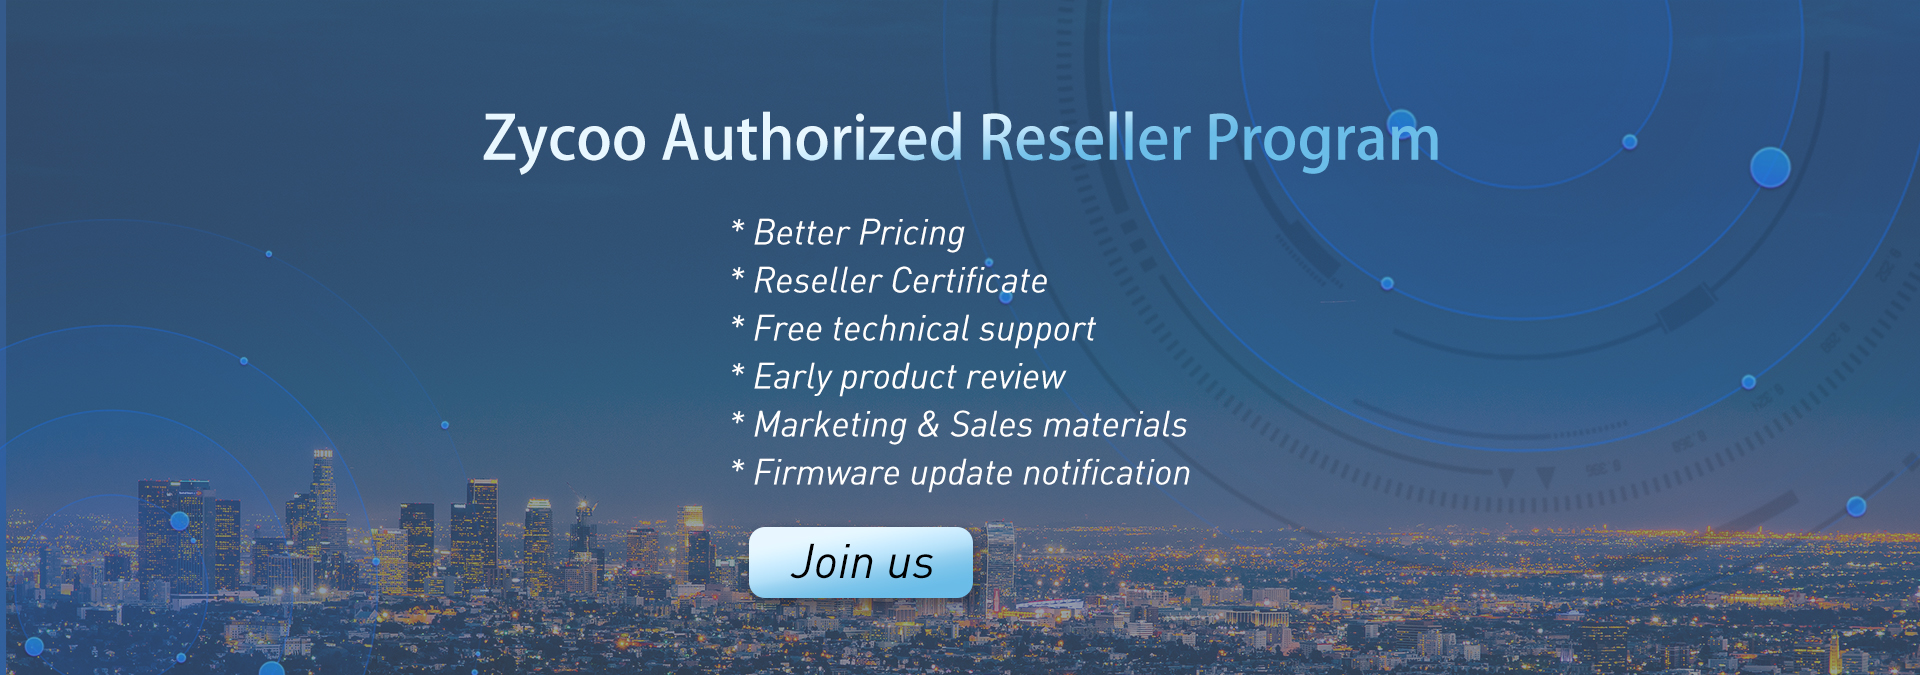 Zycoo Authorized Reseller Program